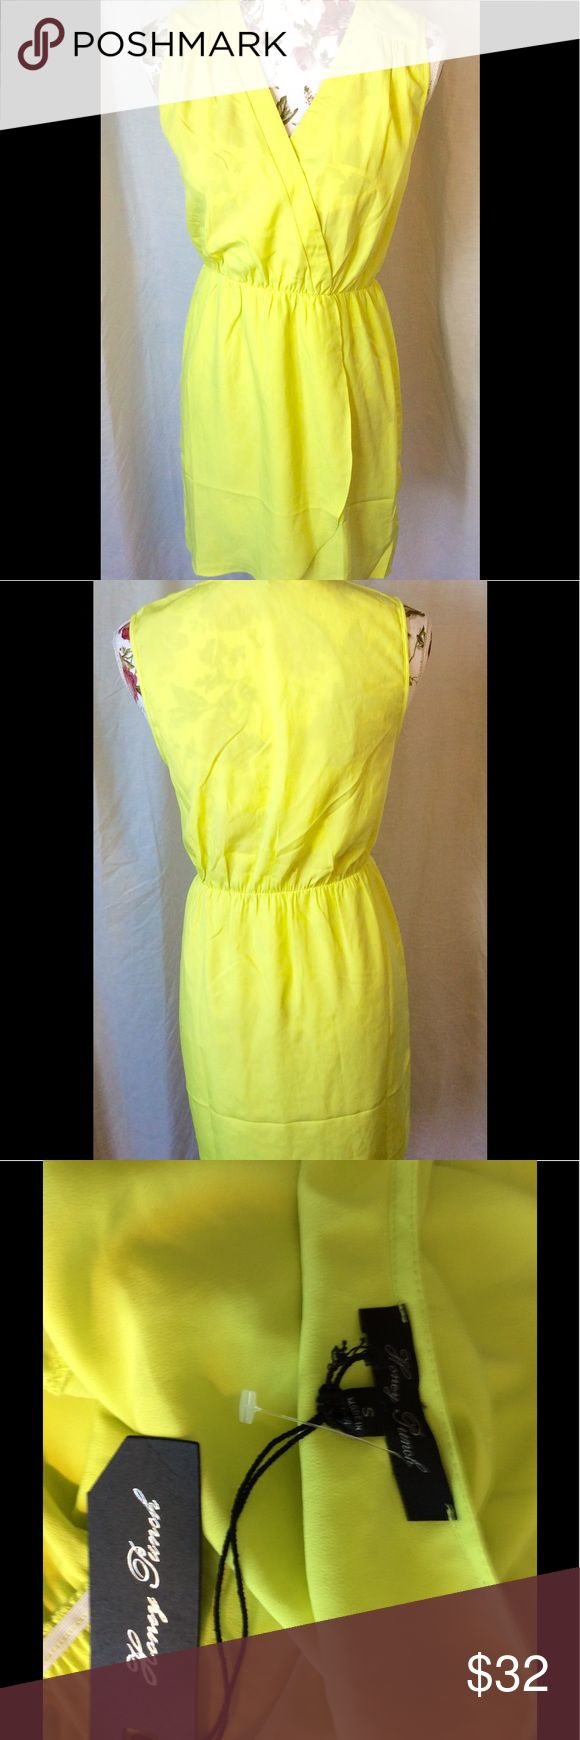 Honey Punch neon yellow dress sz S nwt HoneyPunch neon yellow dress sz S, nwt, pullover. Honey Punch Dresses